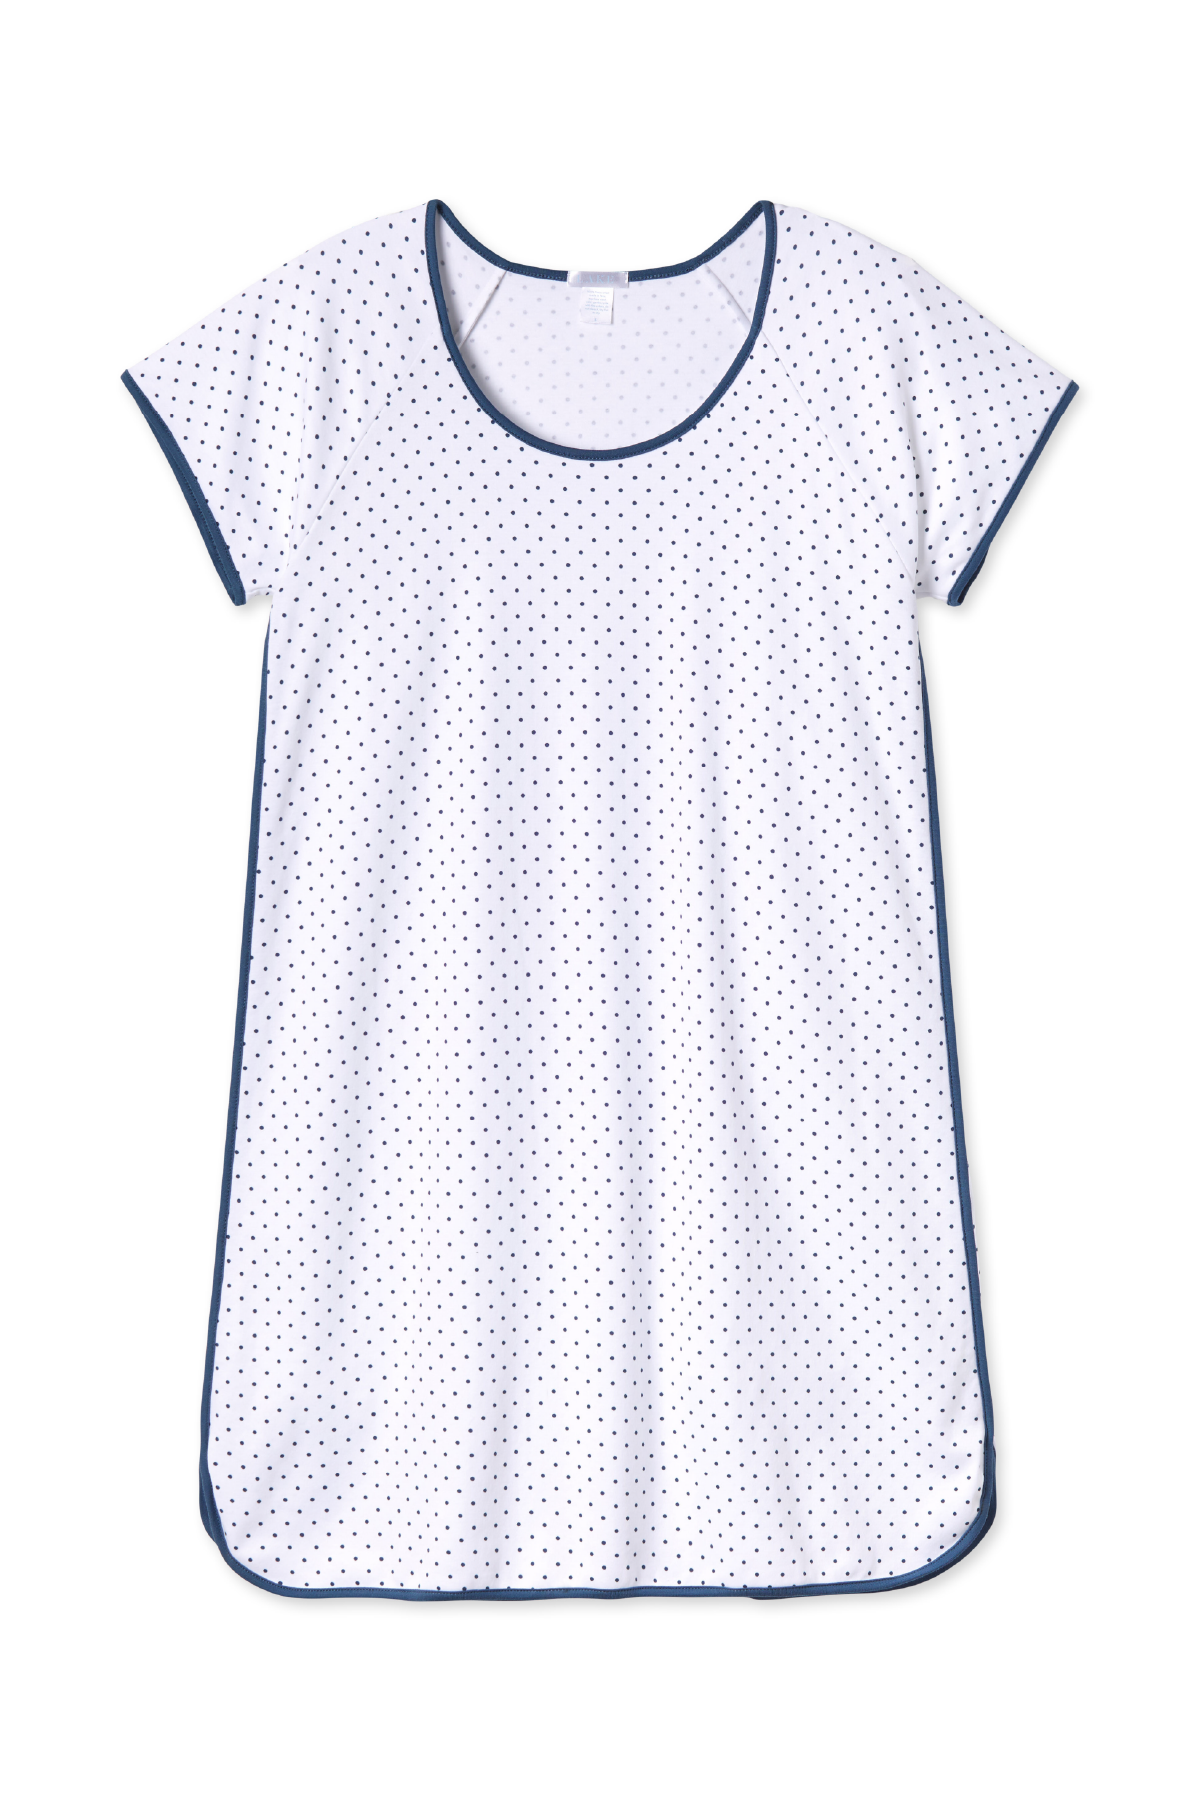 Pima Nightgown in Navy Dot